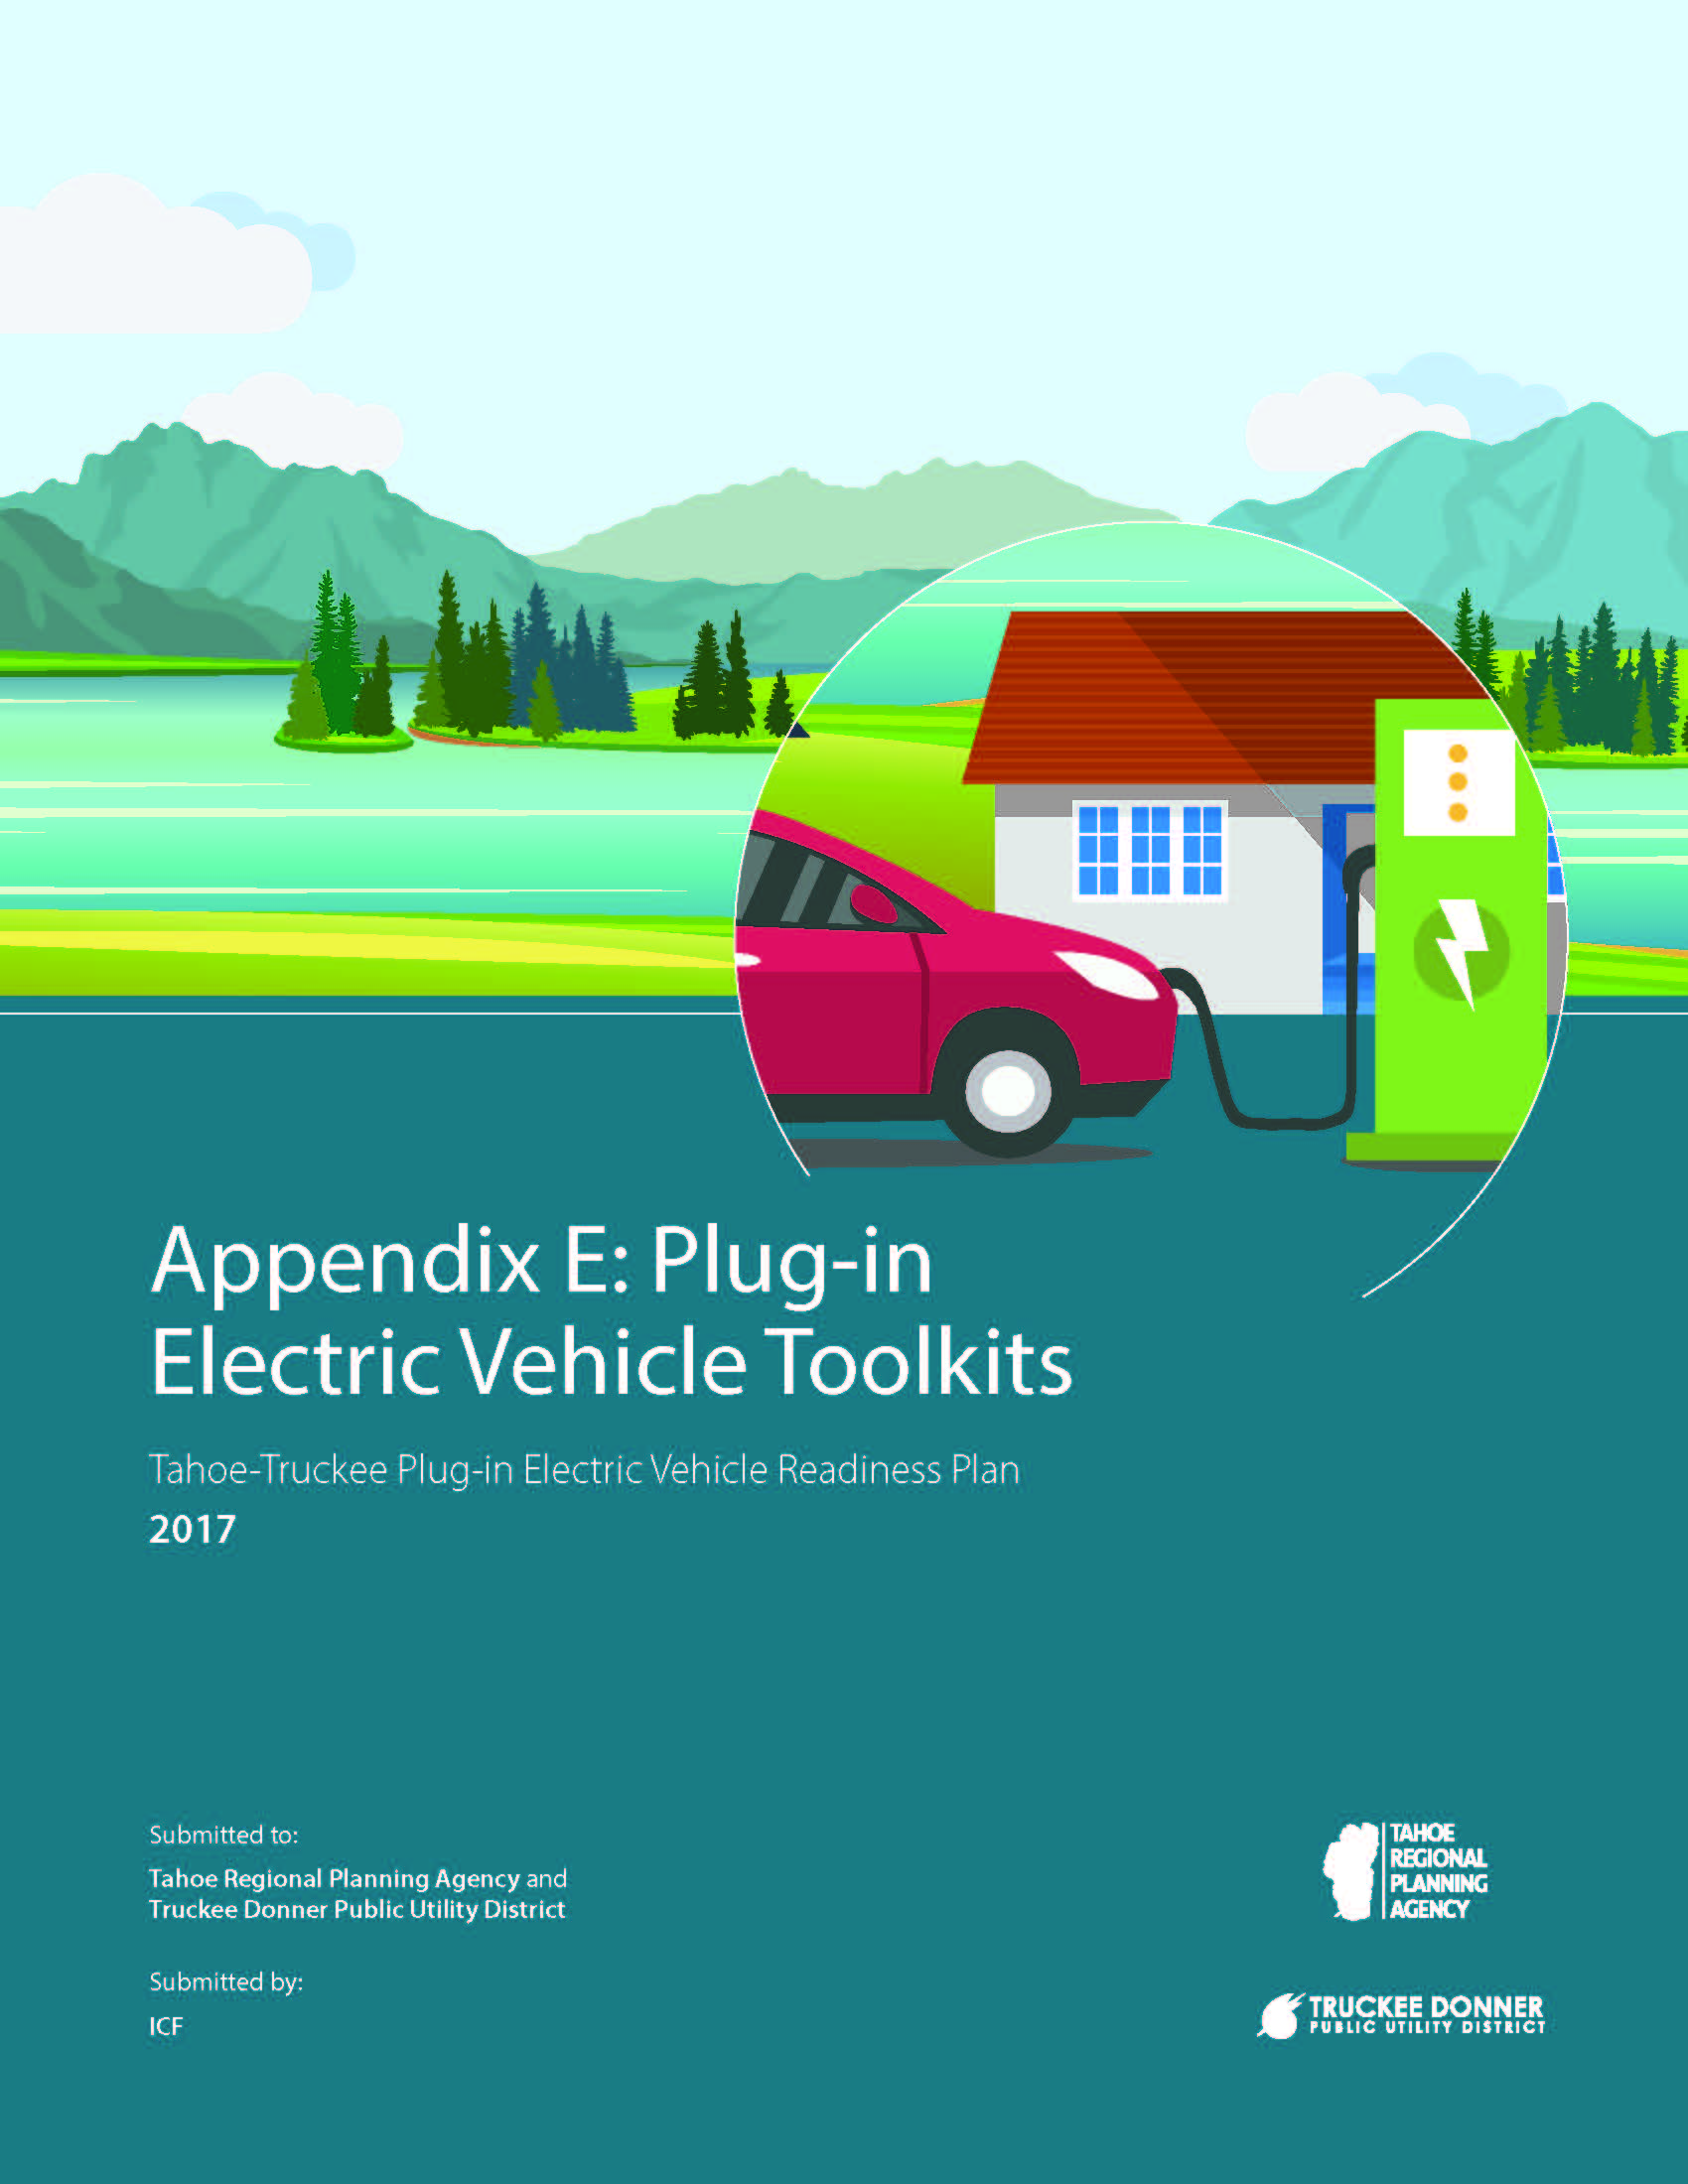 Appendix E Plug-in Electric Vehicle Toolkits